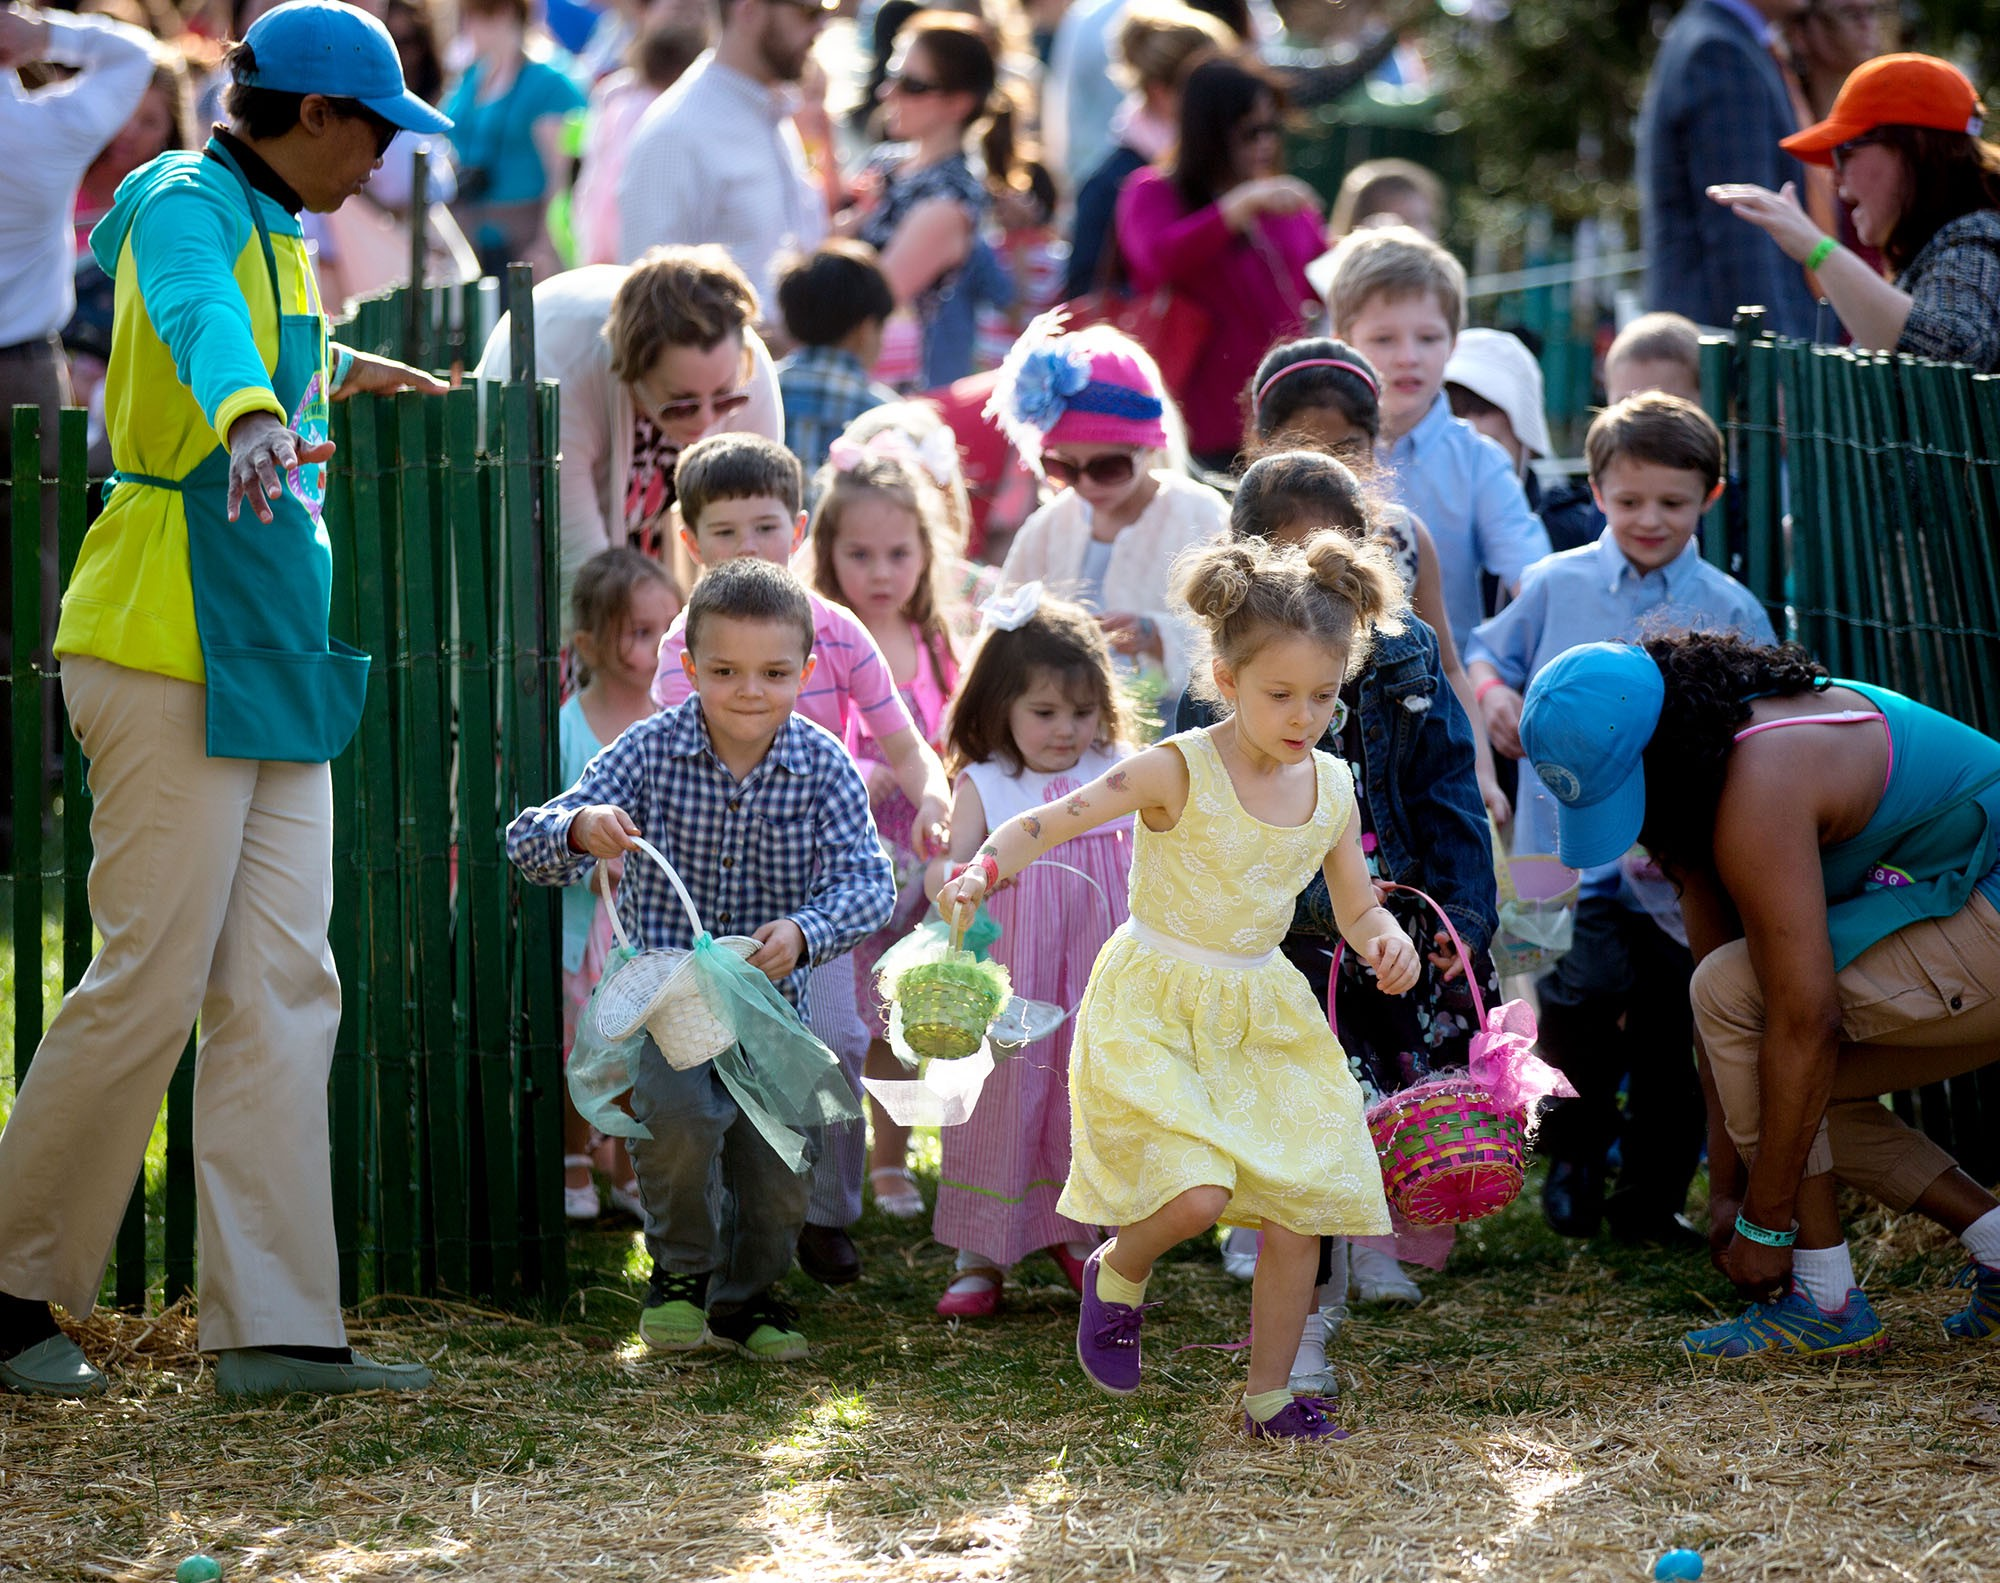 Children rush through the open gate in search of eggs. (Official White House Photo by Lawrence Jackson)